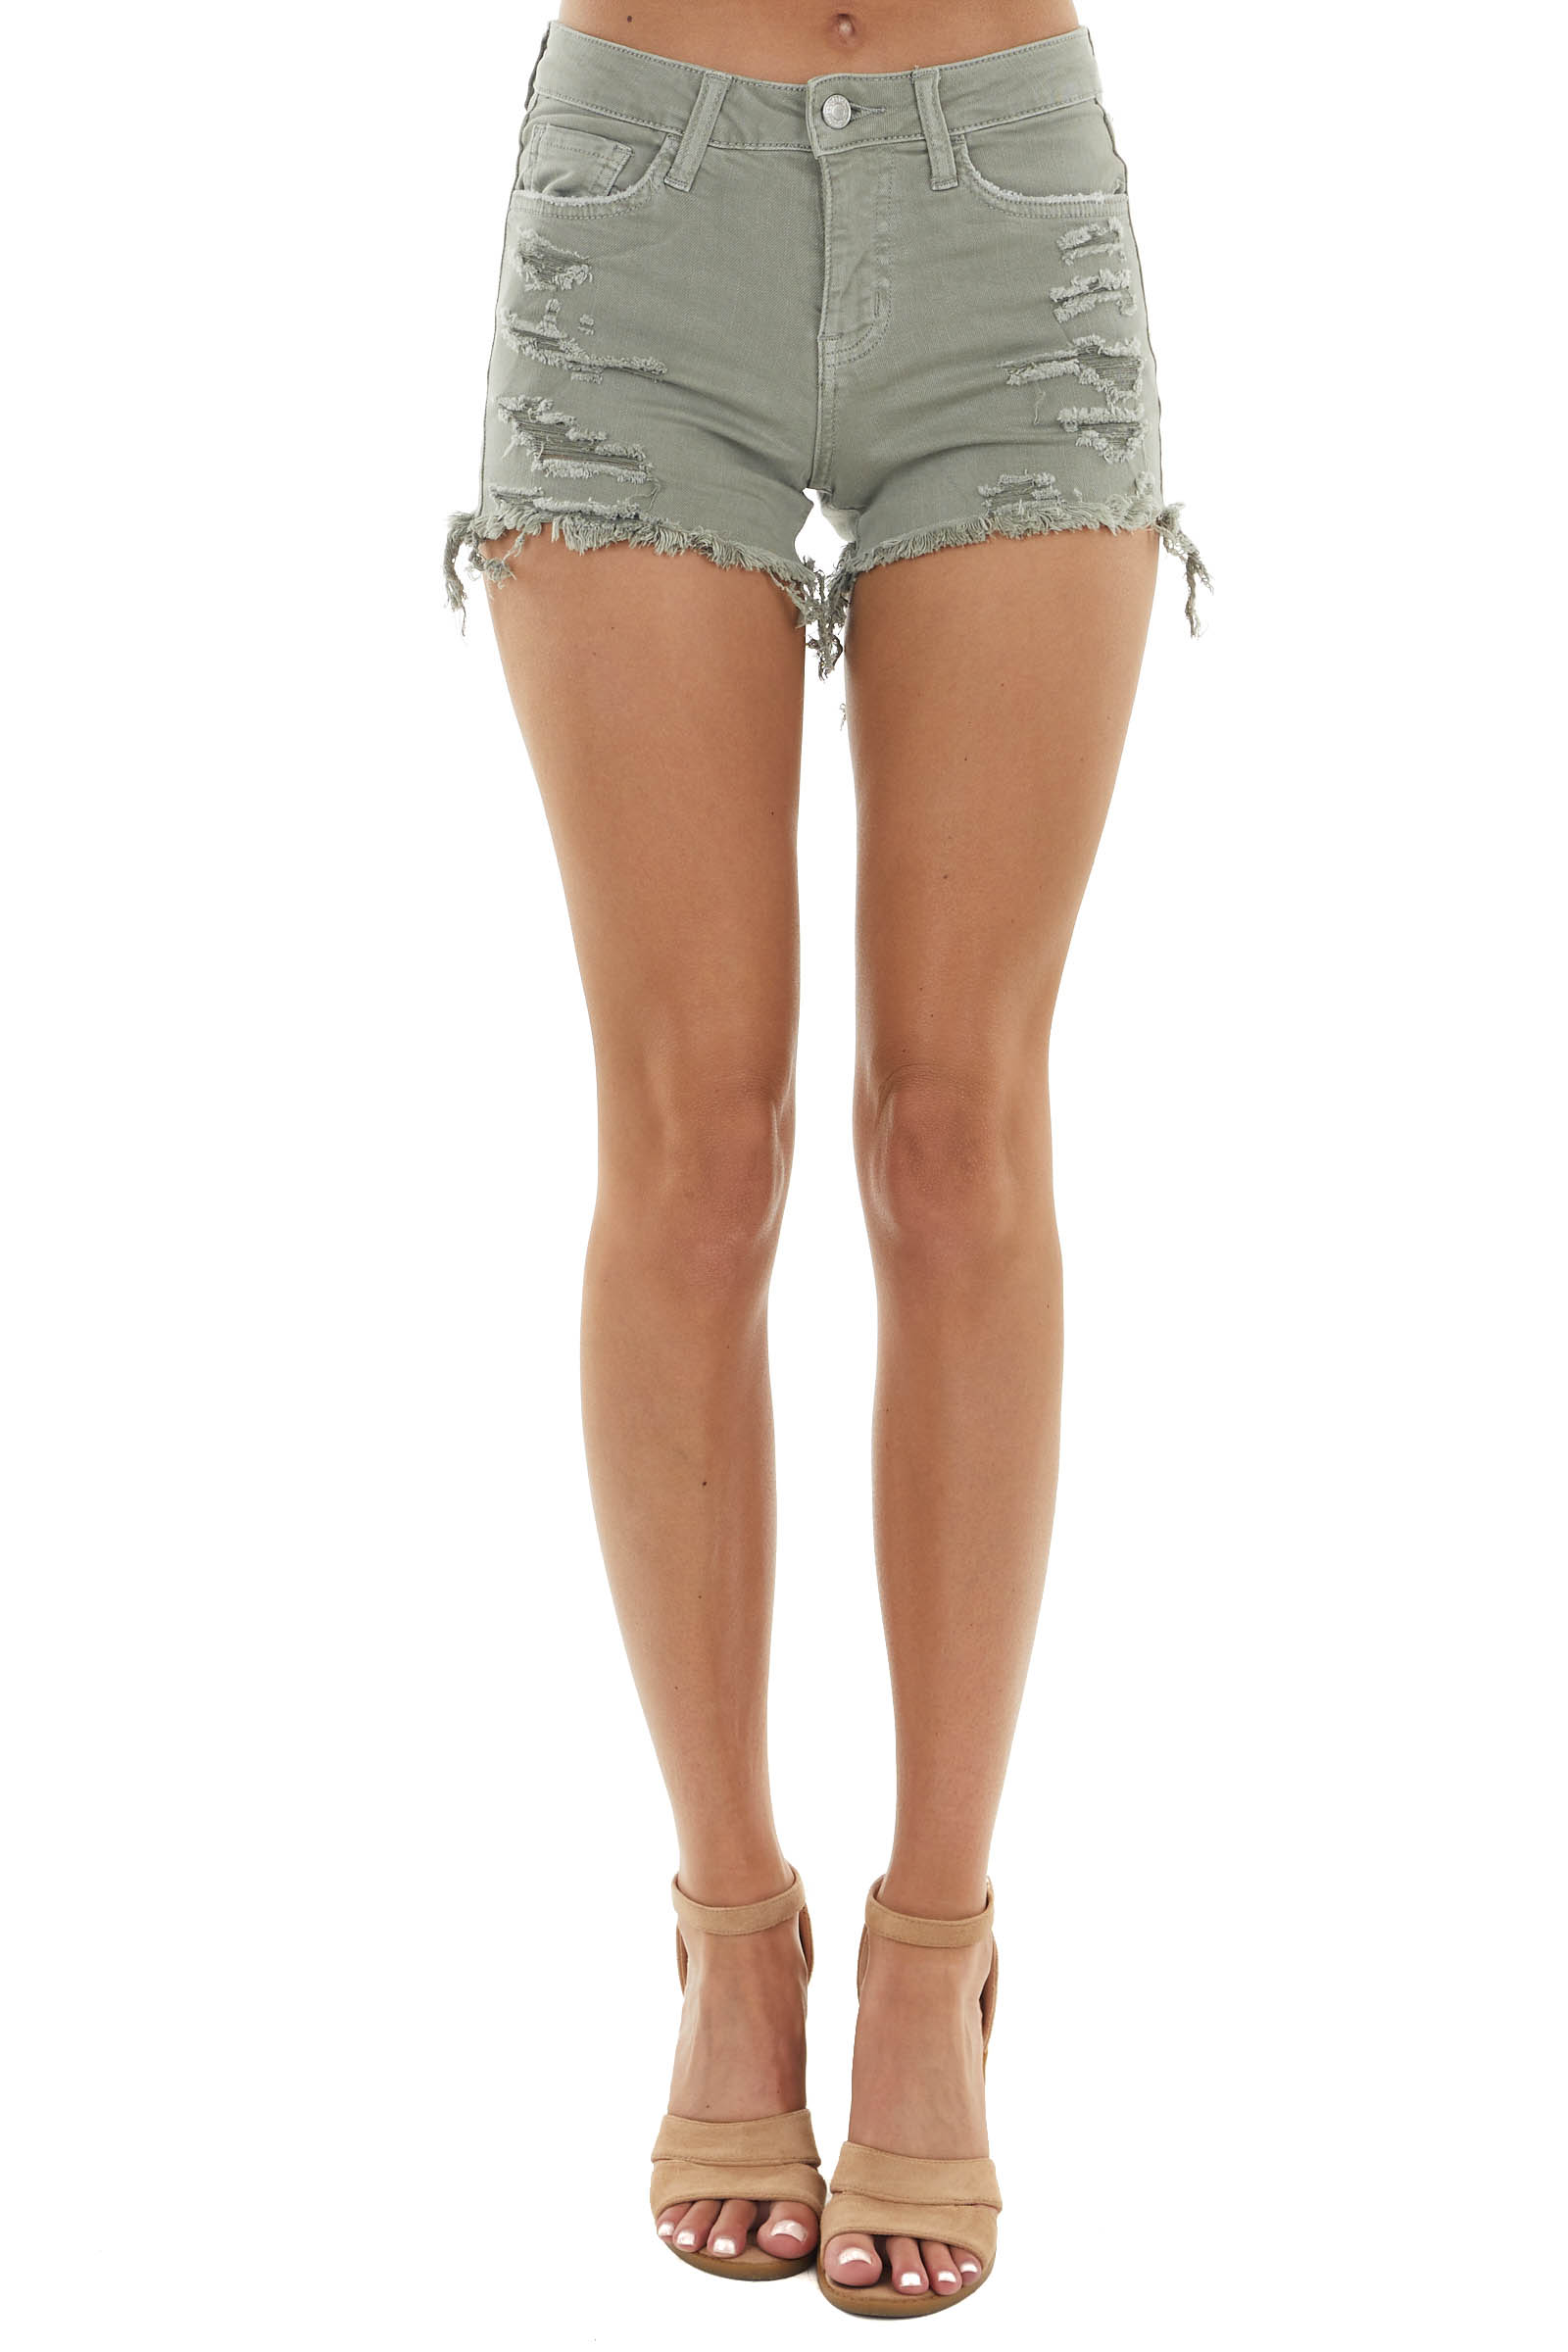 Olive High Rise Shorts with Distressed Details and Raw Hem